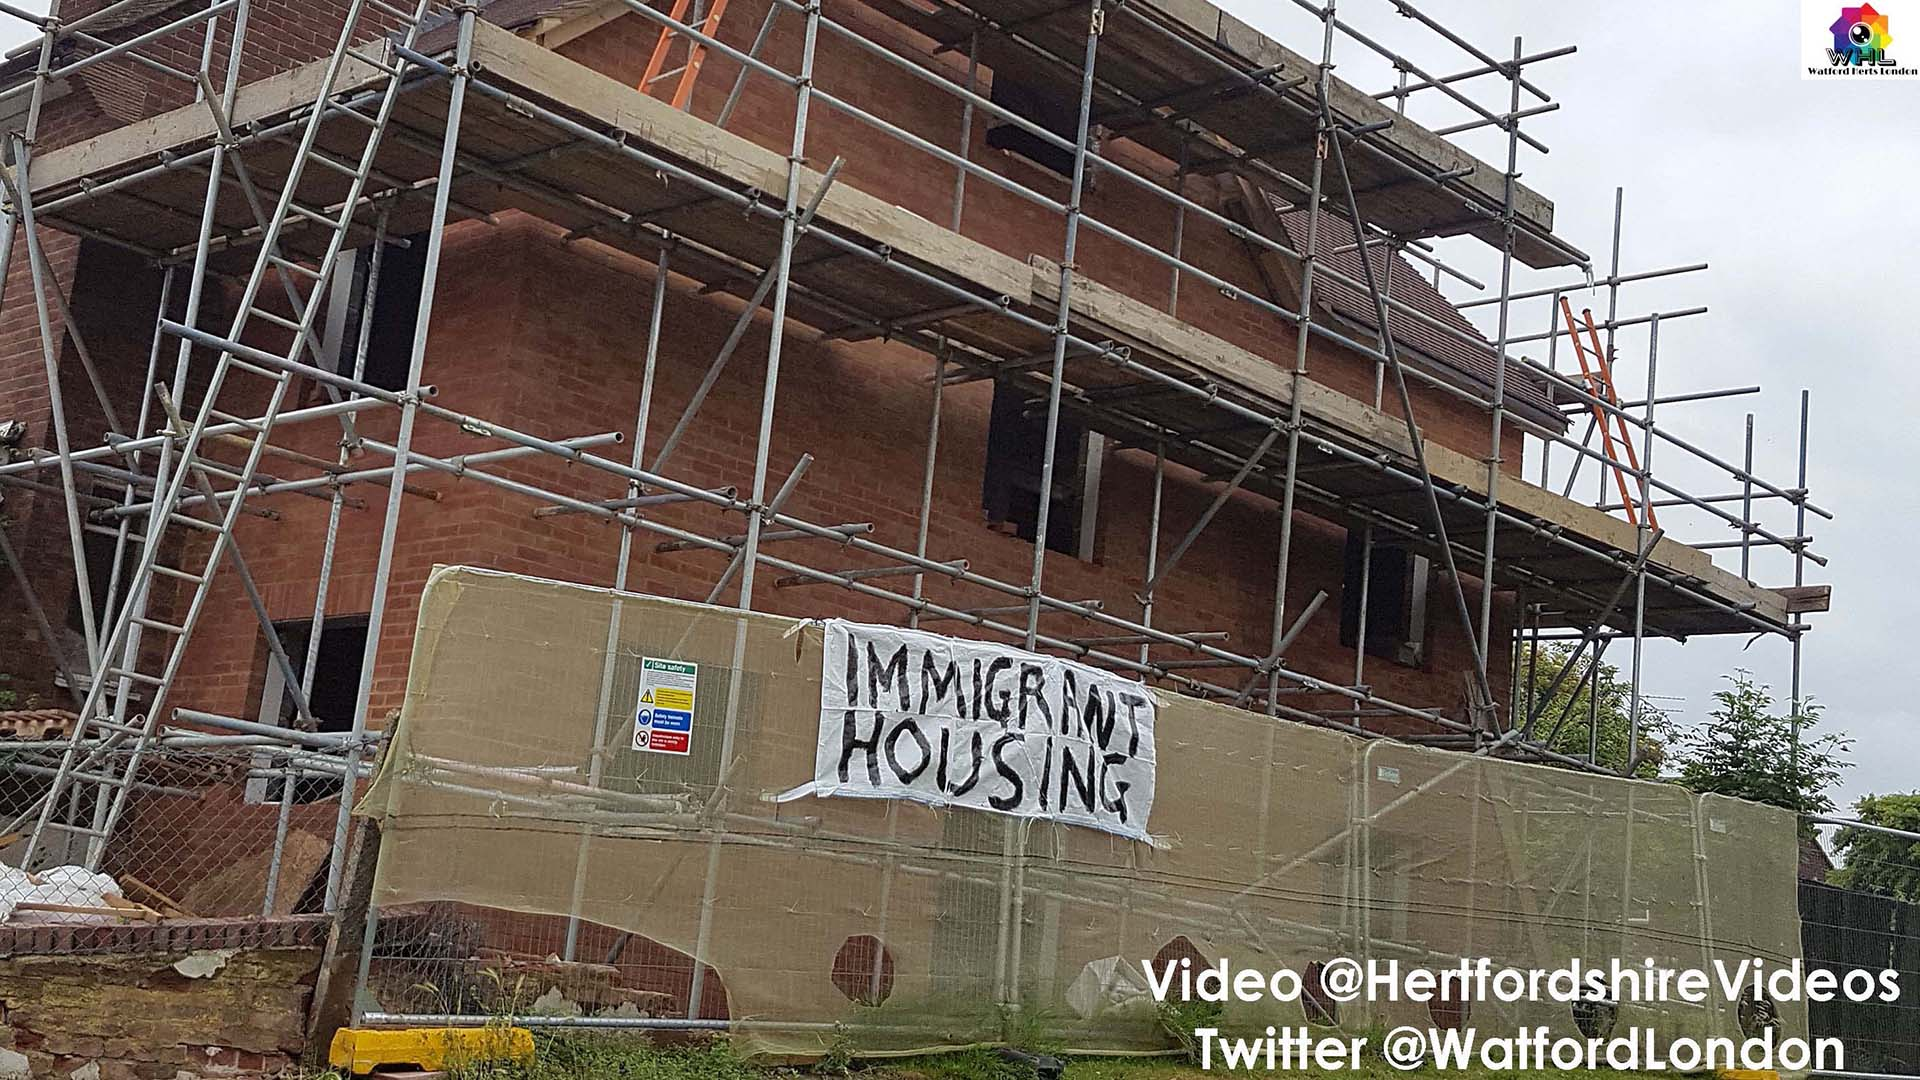 Police Remove Immigrant Housing Graffiti Banner on House in Meriden Watford